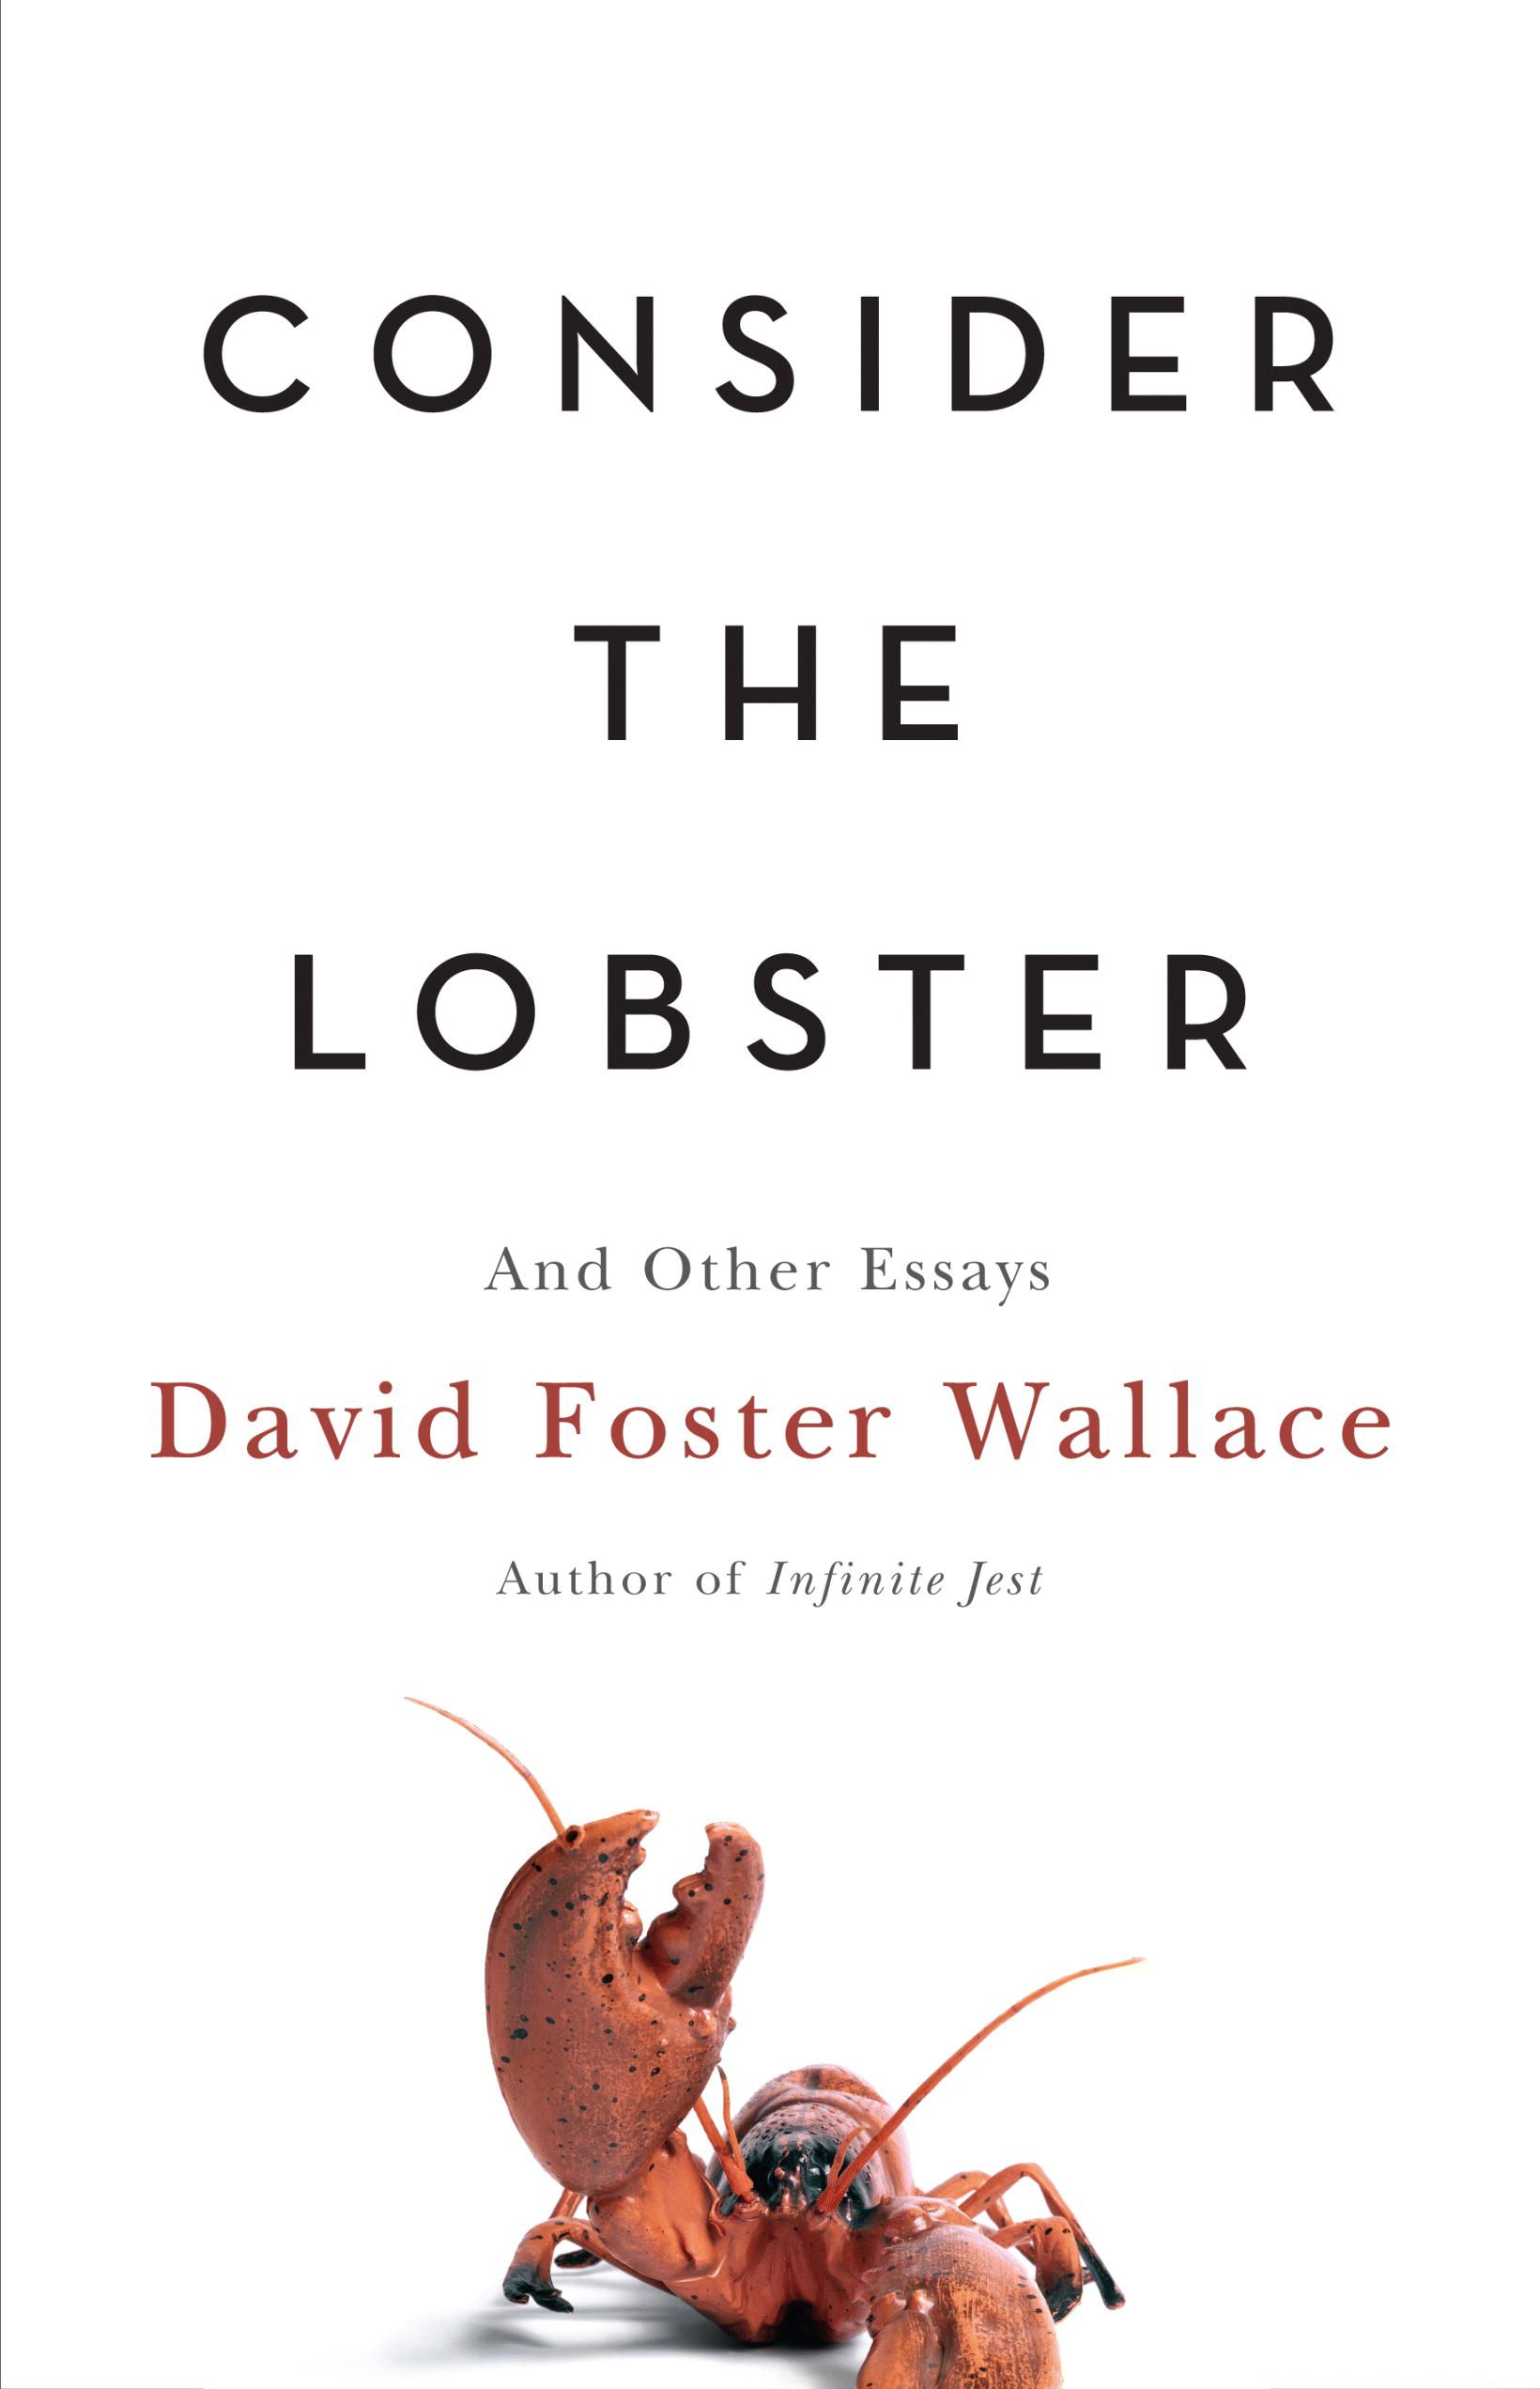 008 David Foster Wallace Essays Essay Example Formidable Amazon And The Long Thing New On Novels Cruise Ship Full